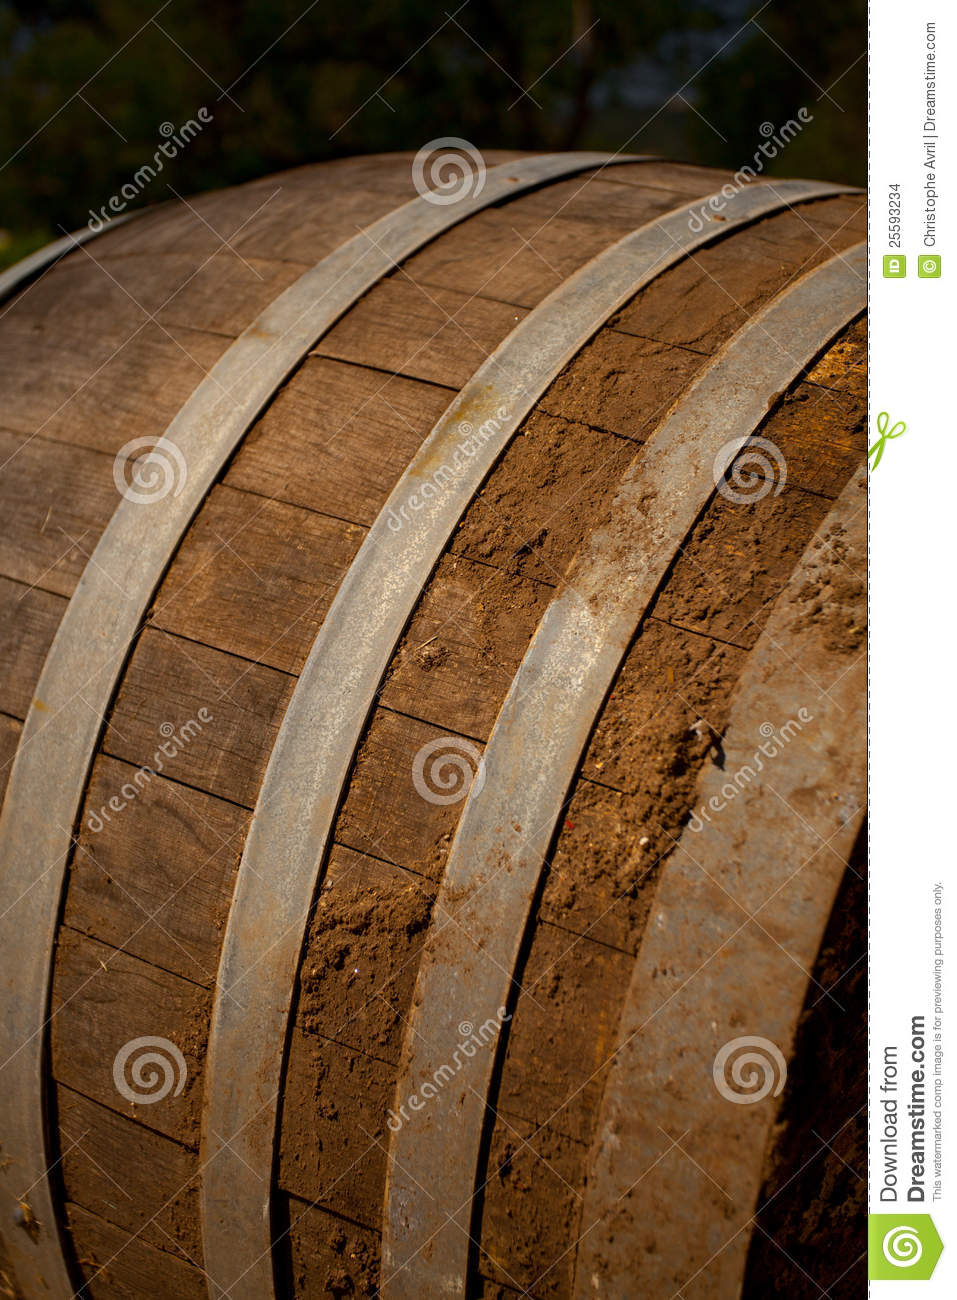 - wine-barrel-cellar-25593234